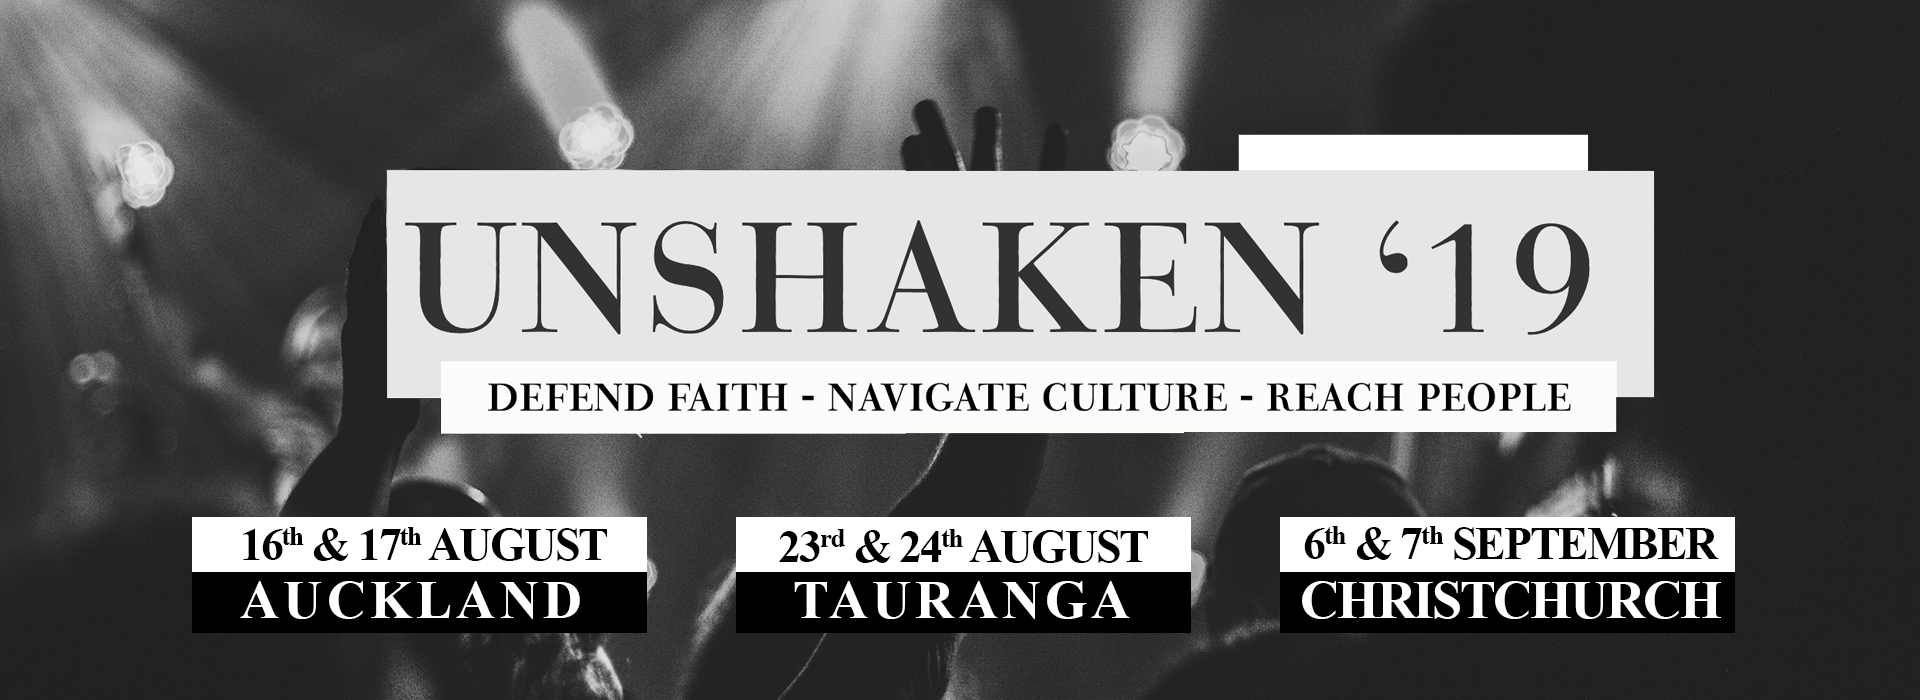 unshaken website banner